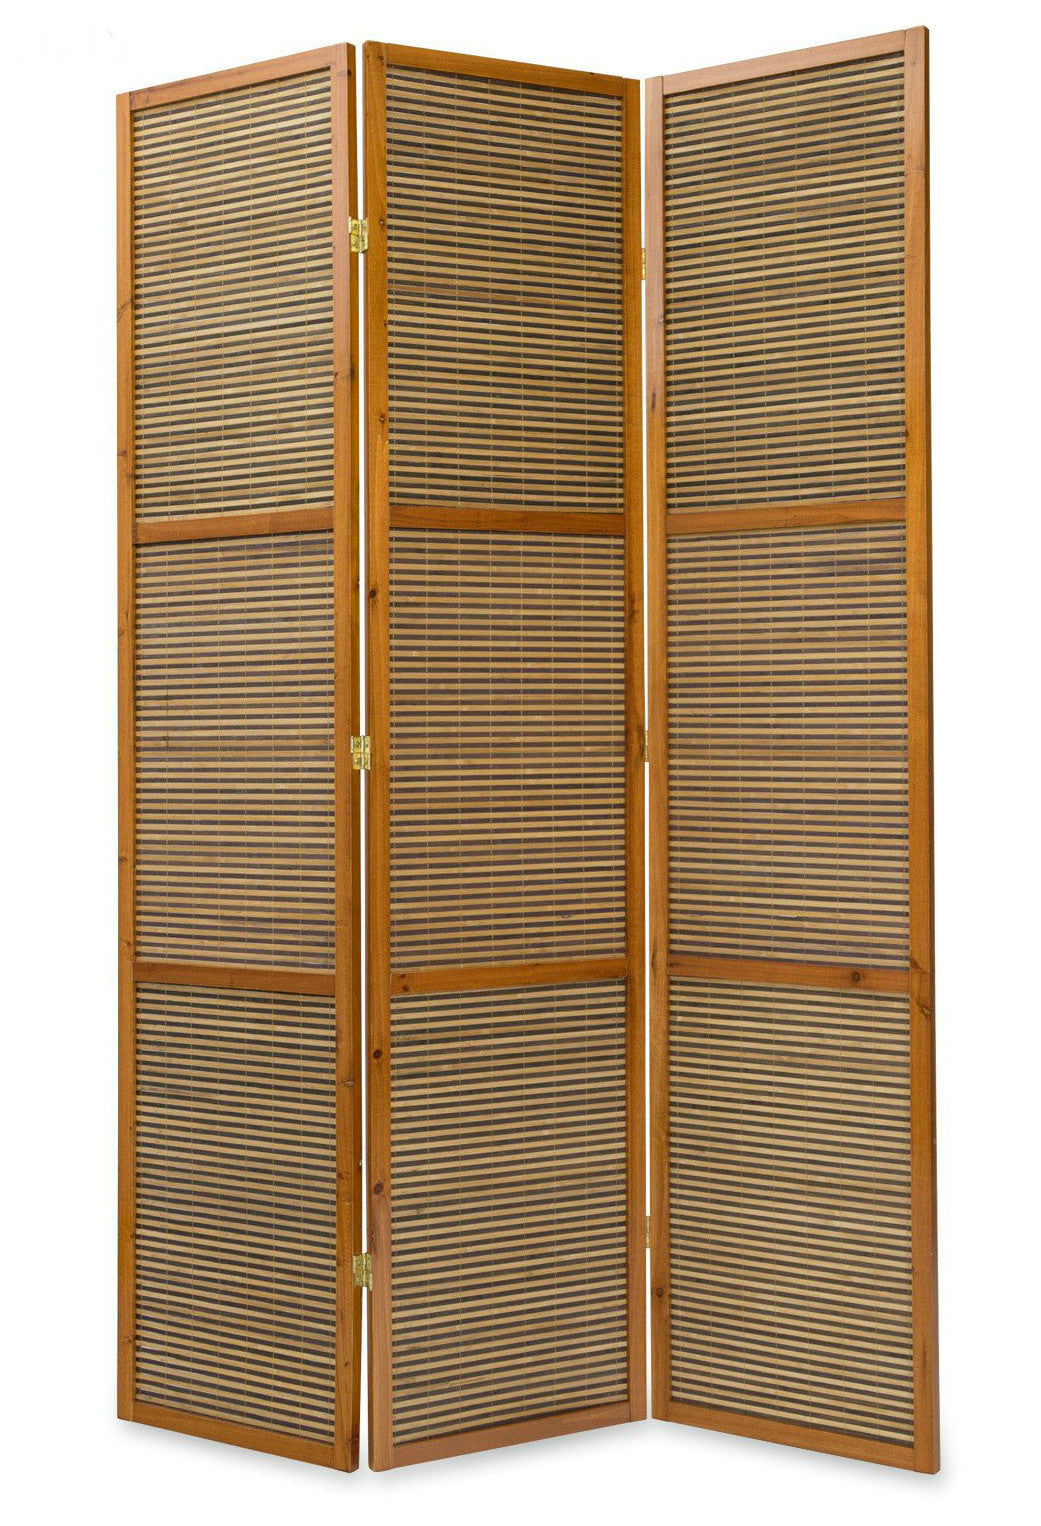 bamboo room divider 3 panel room dividers room dividers uk